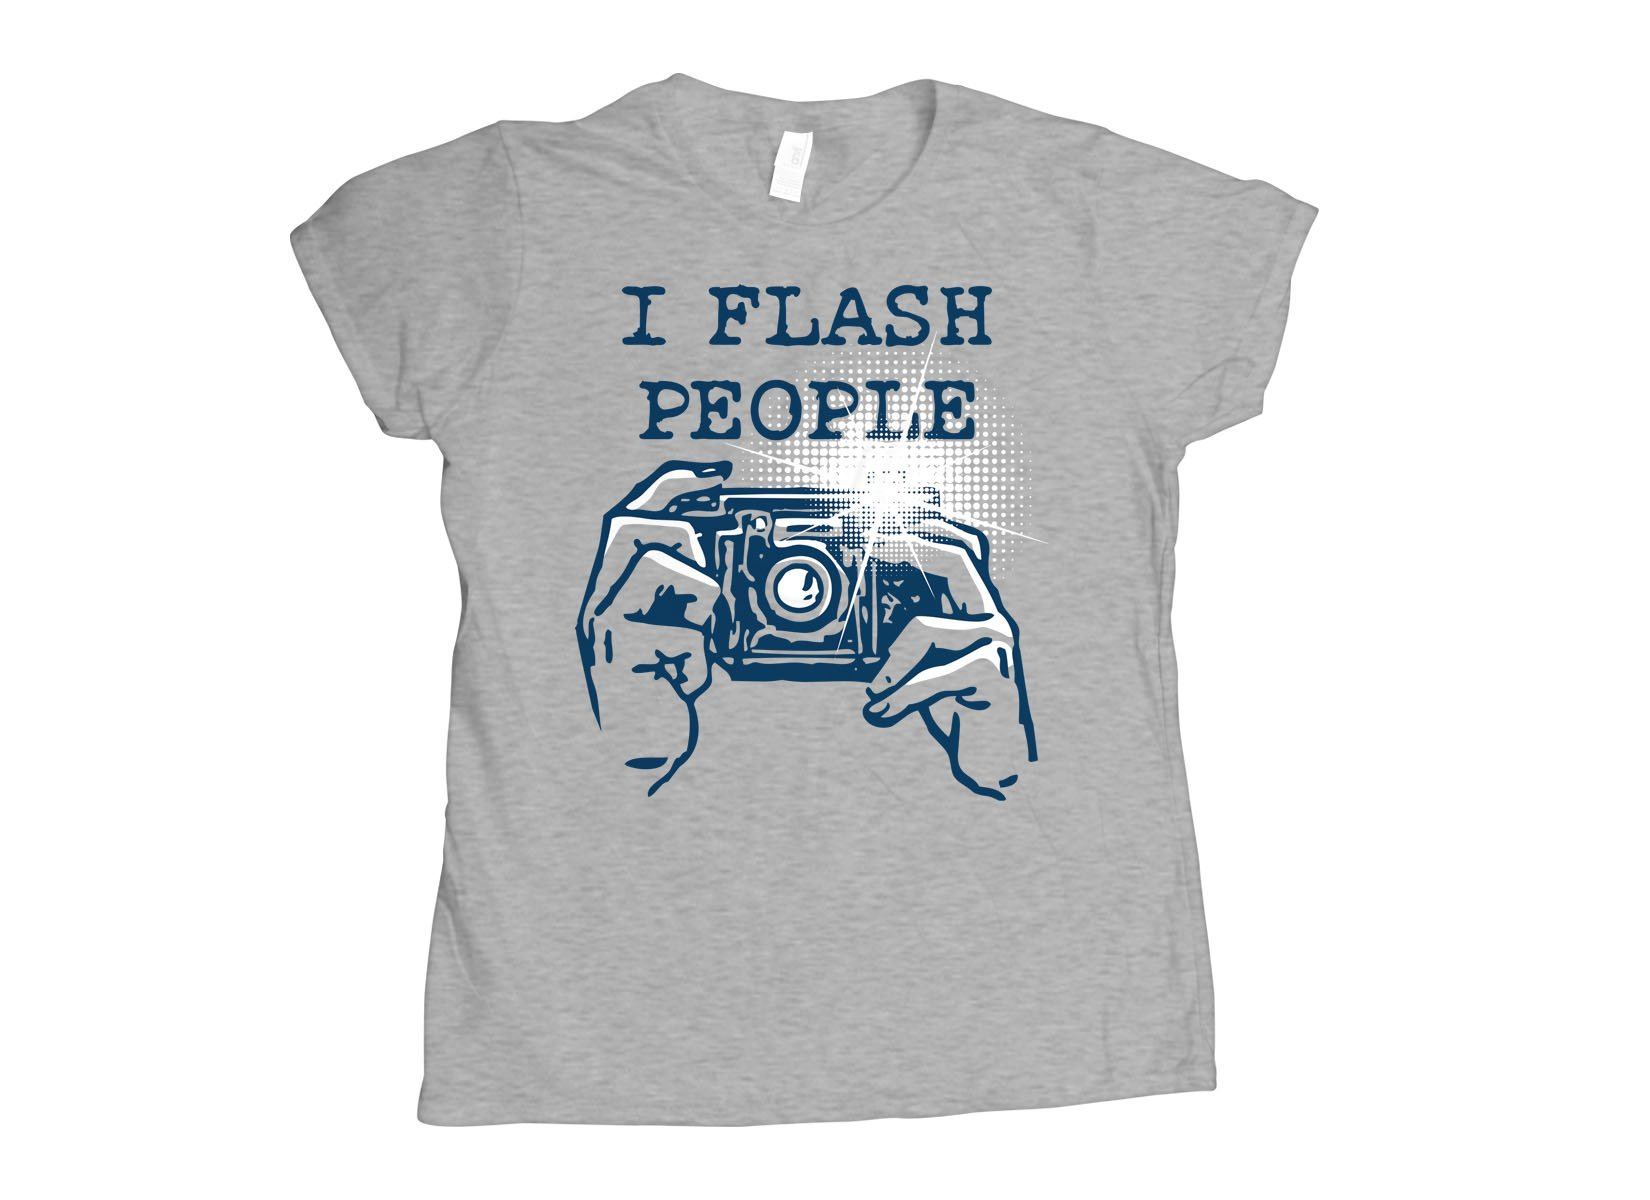 I Flash People on Womens T-Shirt